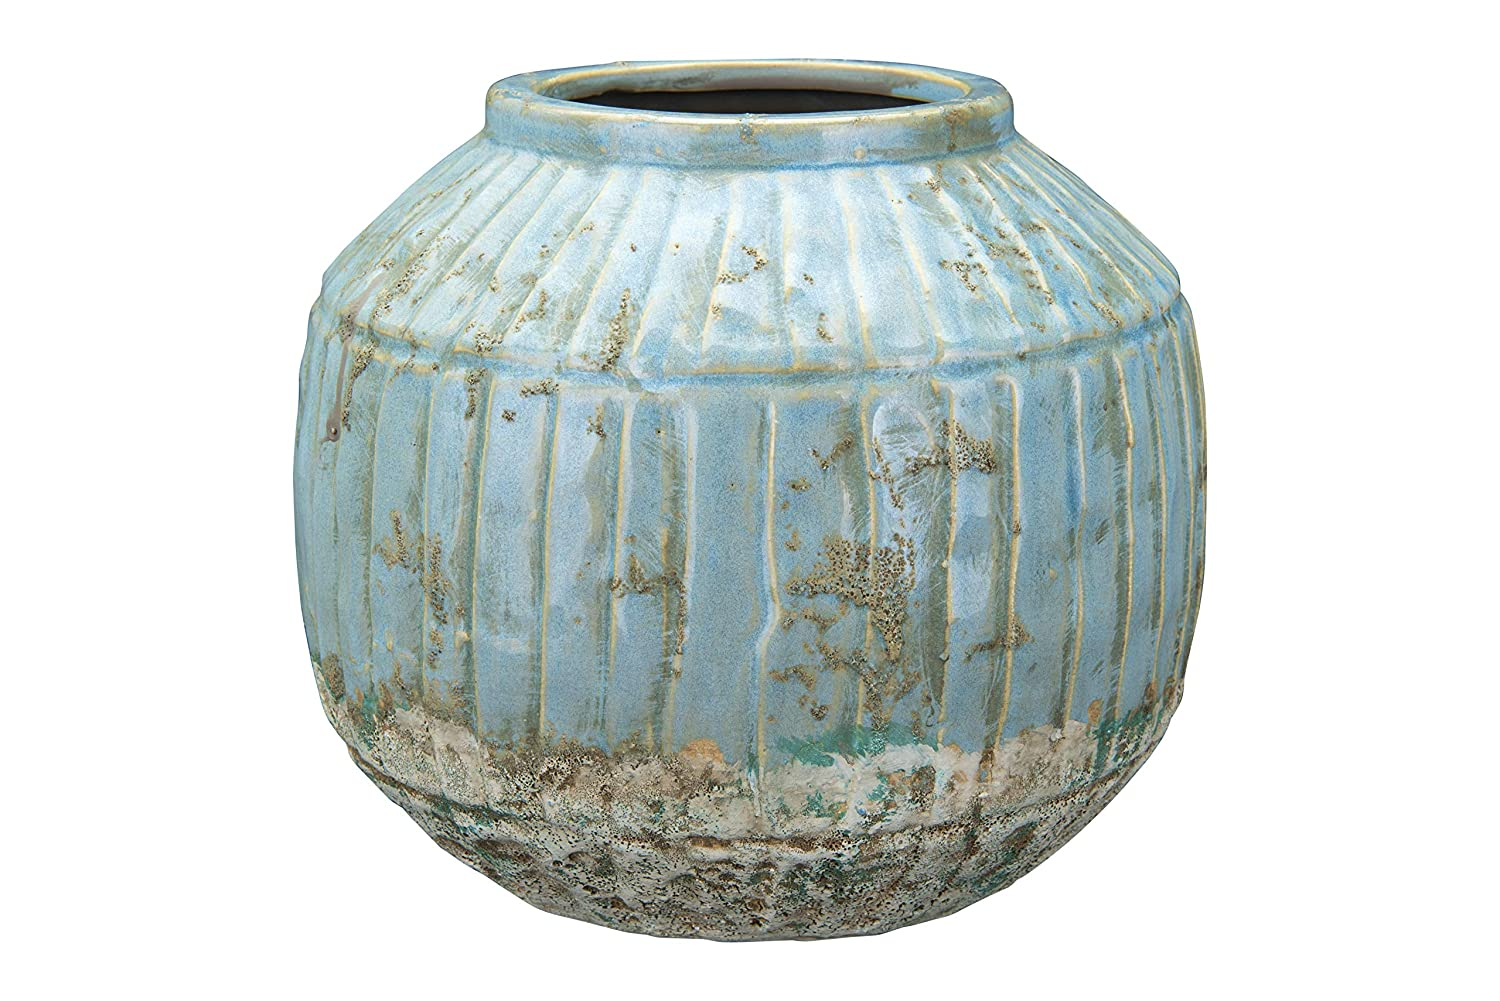 Rustic distressed turquoise blue round planter for French farmhouse and European country decorating.